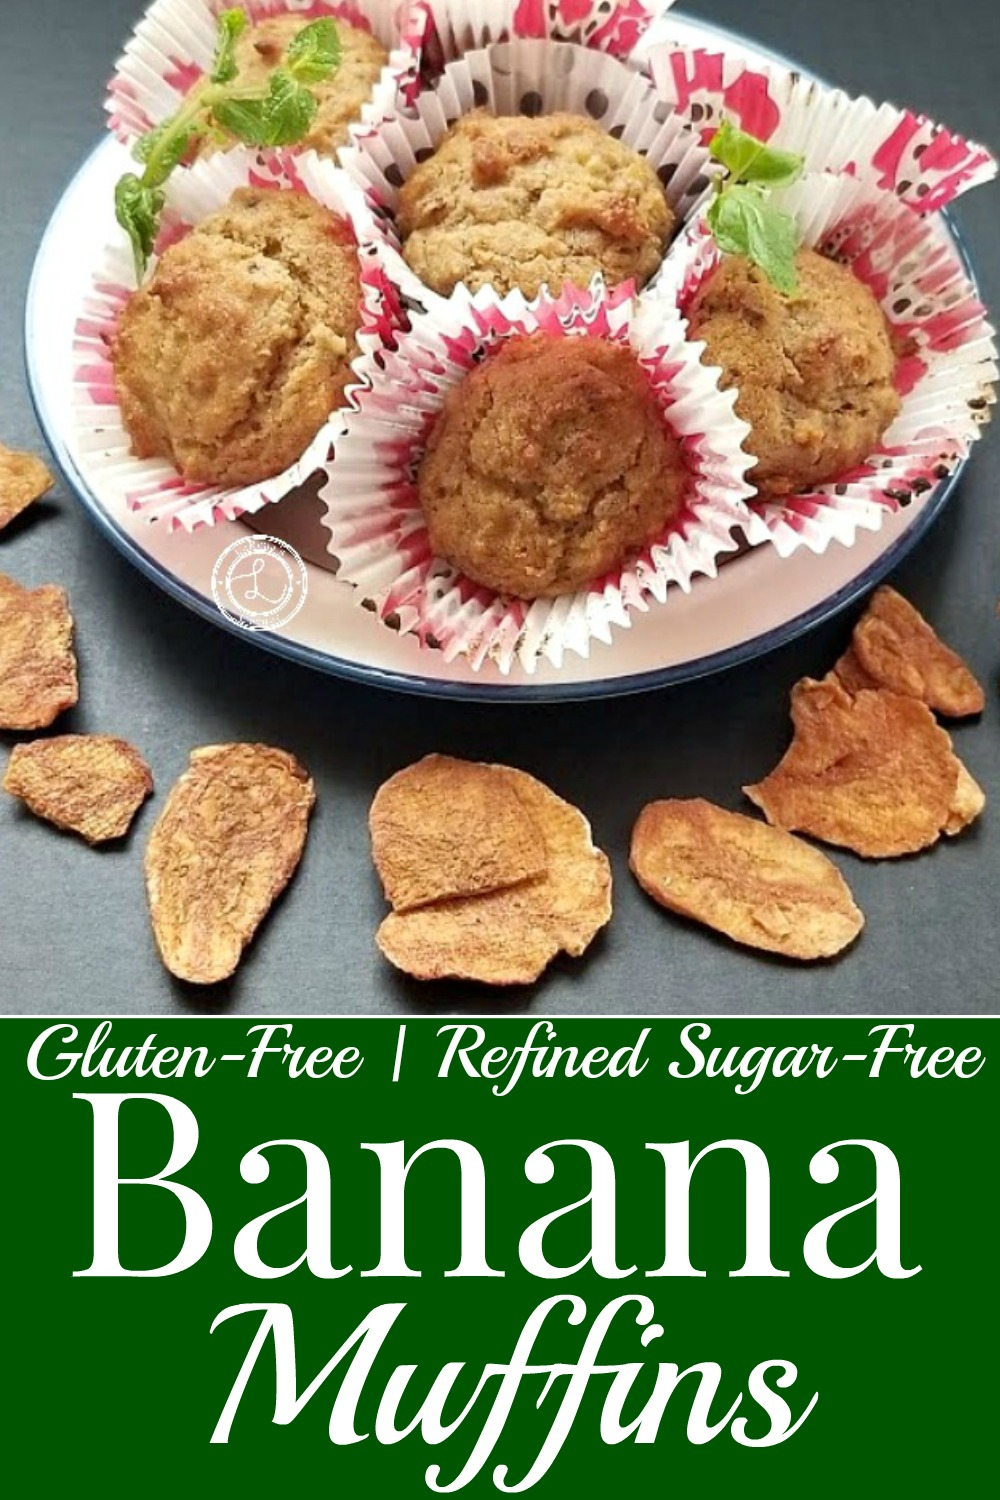 Banana Muffins on a plate with dried cinnamon bananas around it